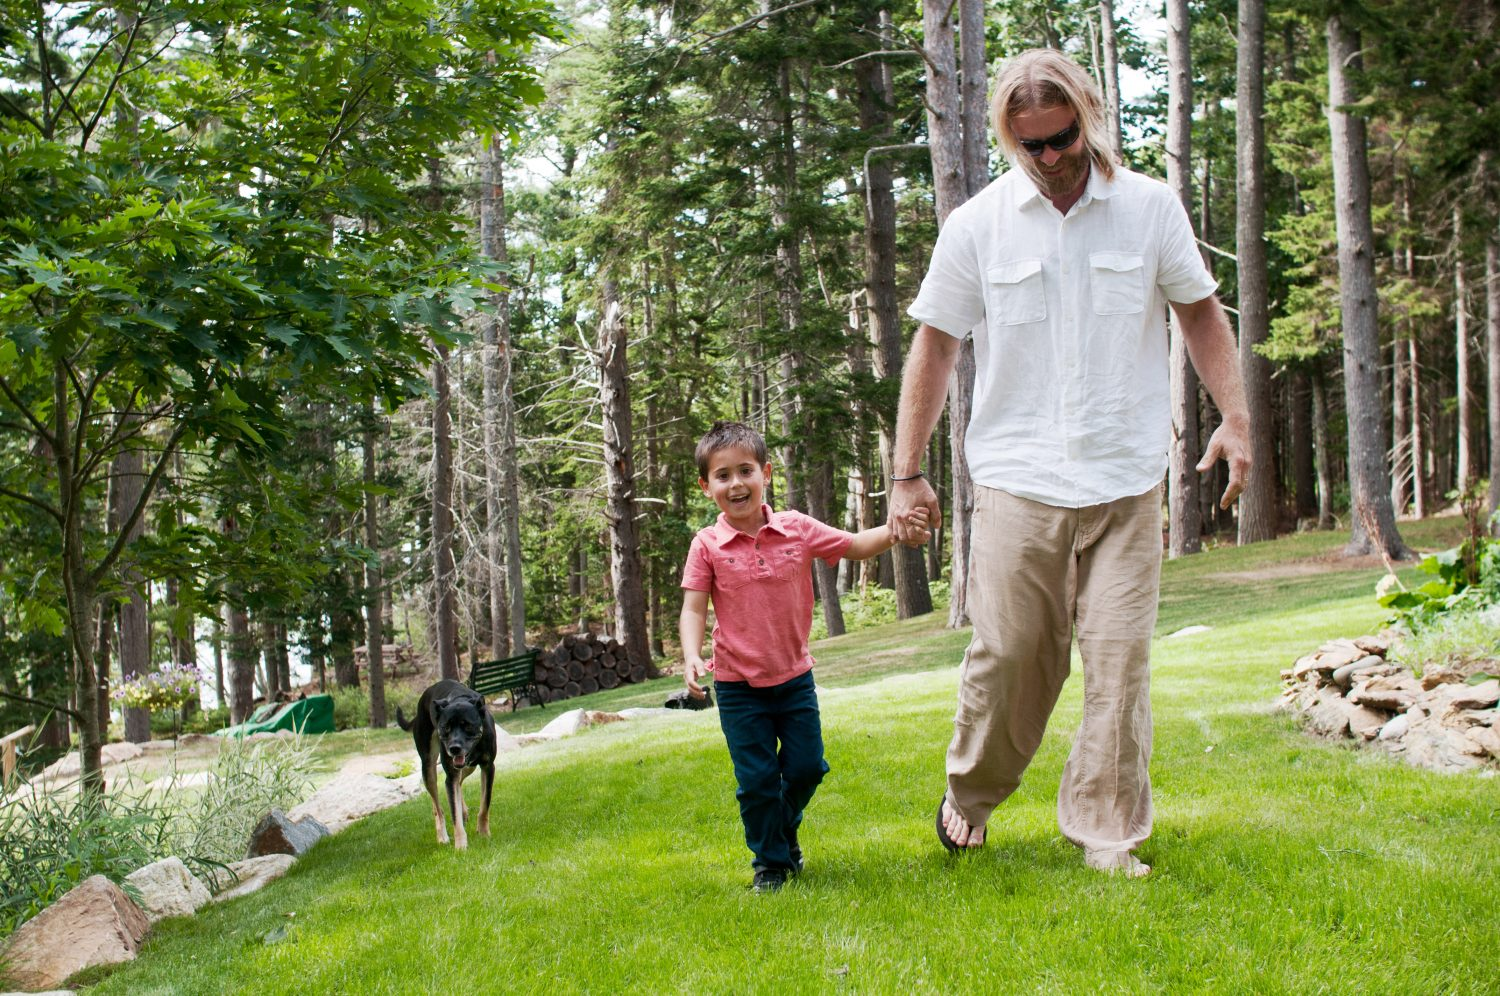 father and young boy holding hands and walking in the grass with older dog